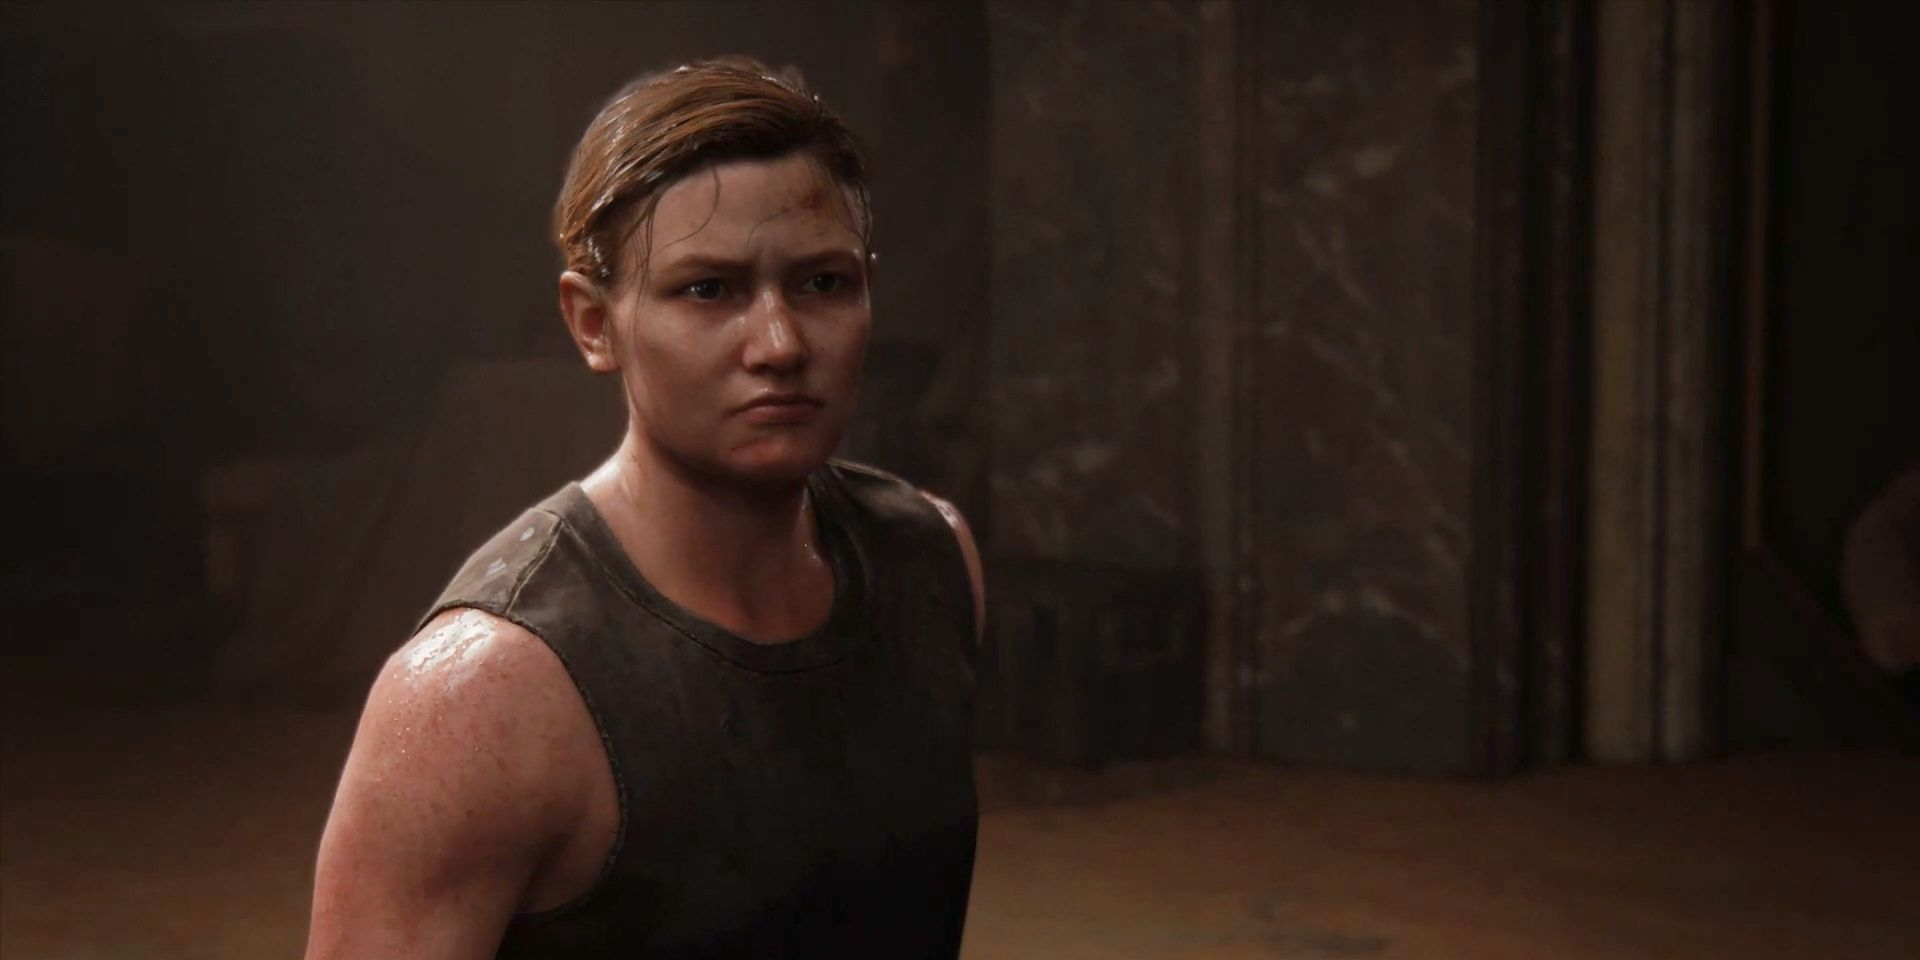 Last of Us Part 2: Who Plays Abby - Voice, Face, & Body Models